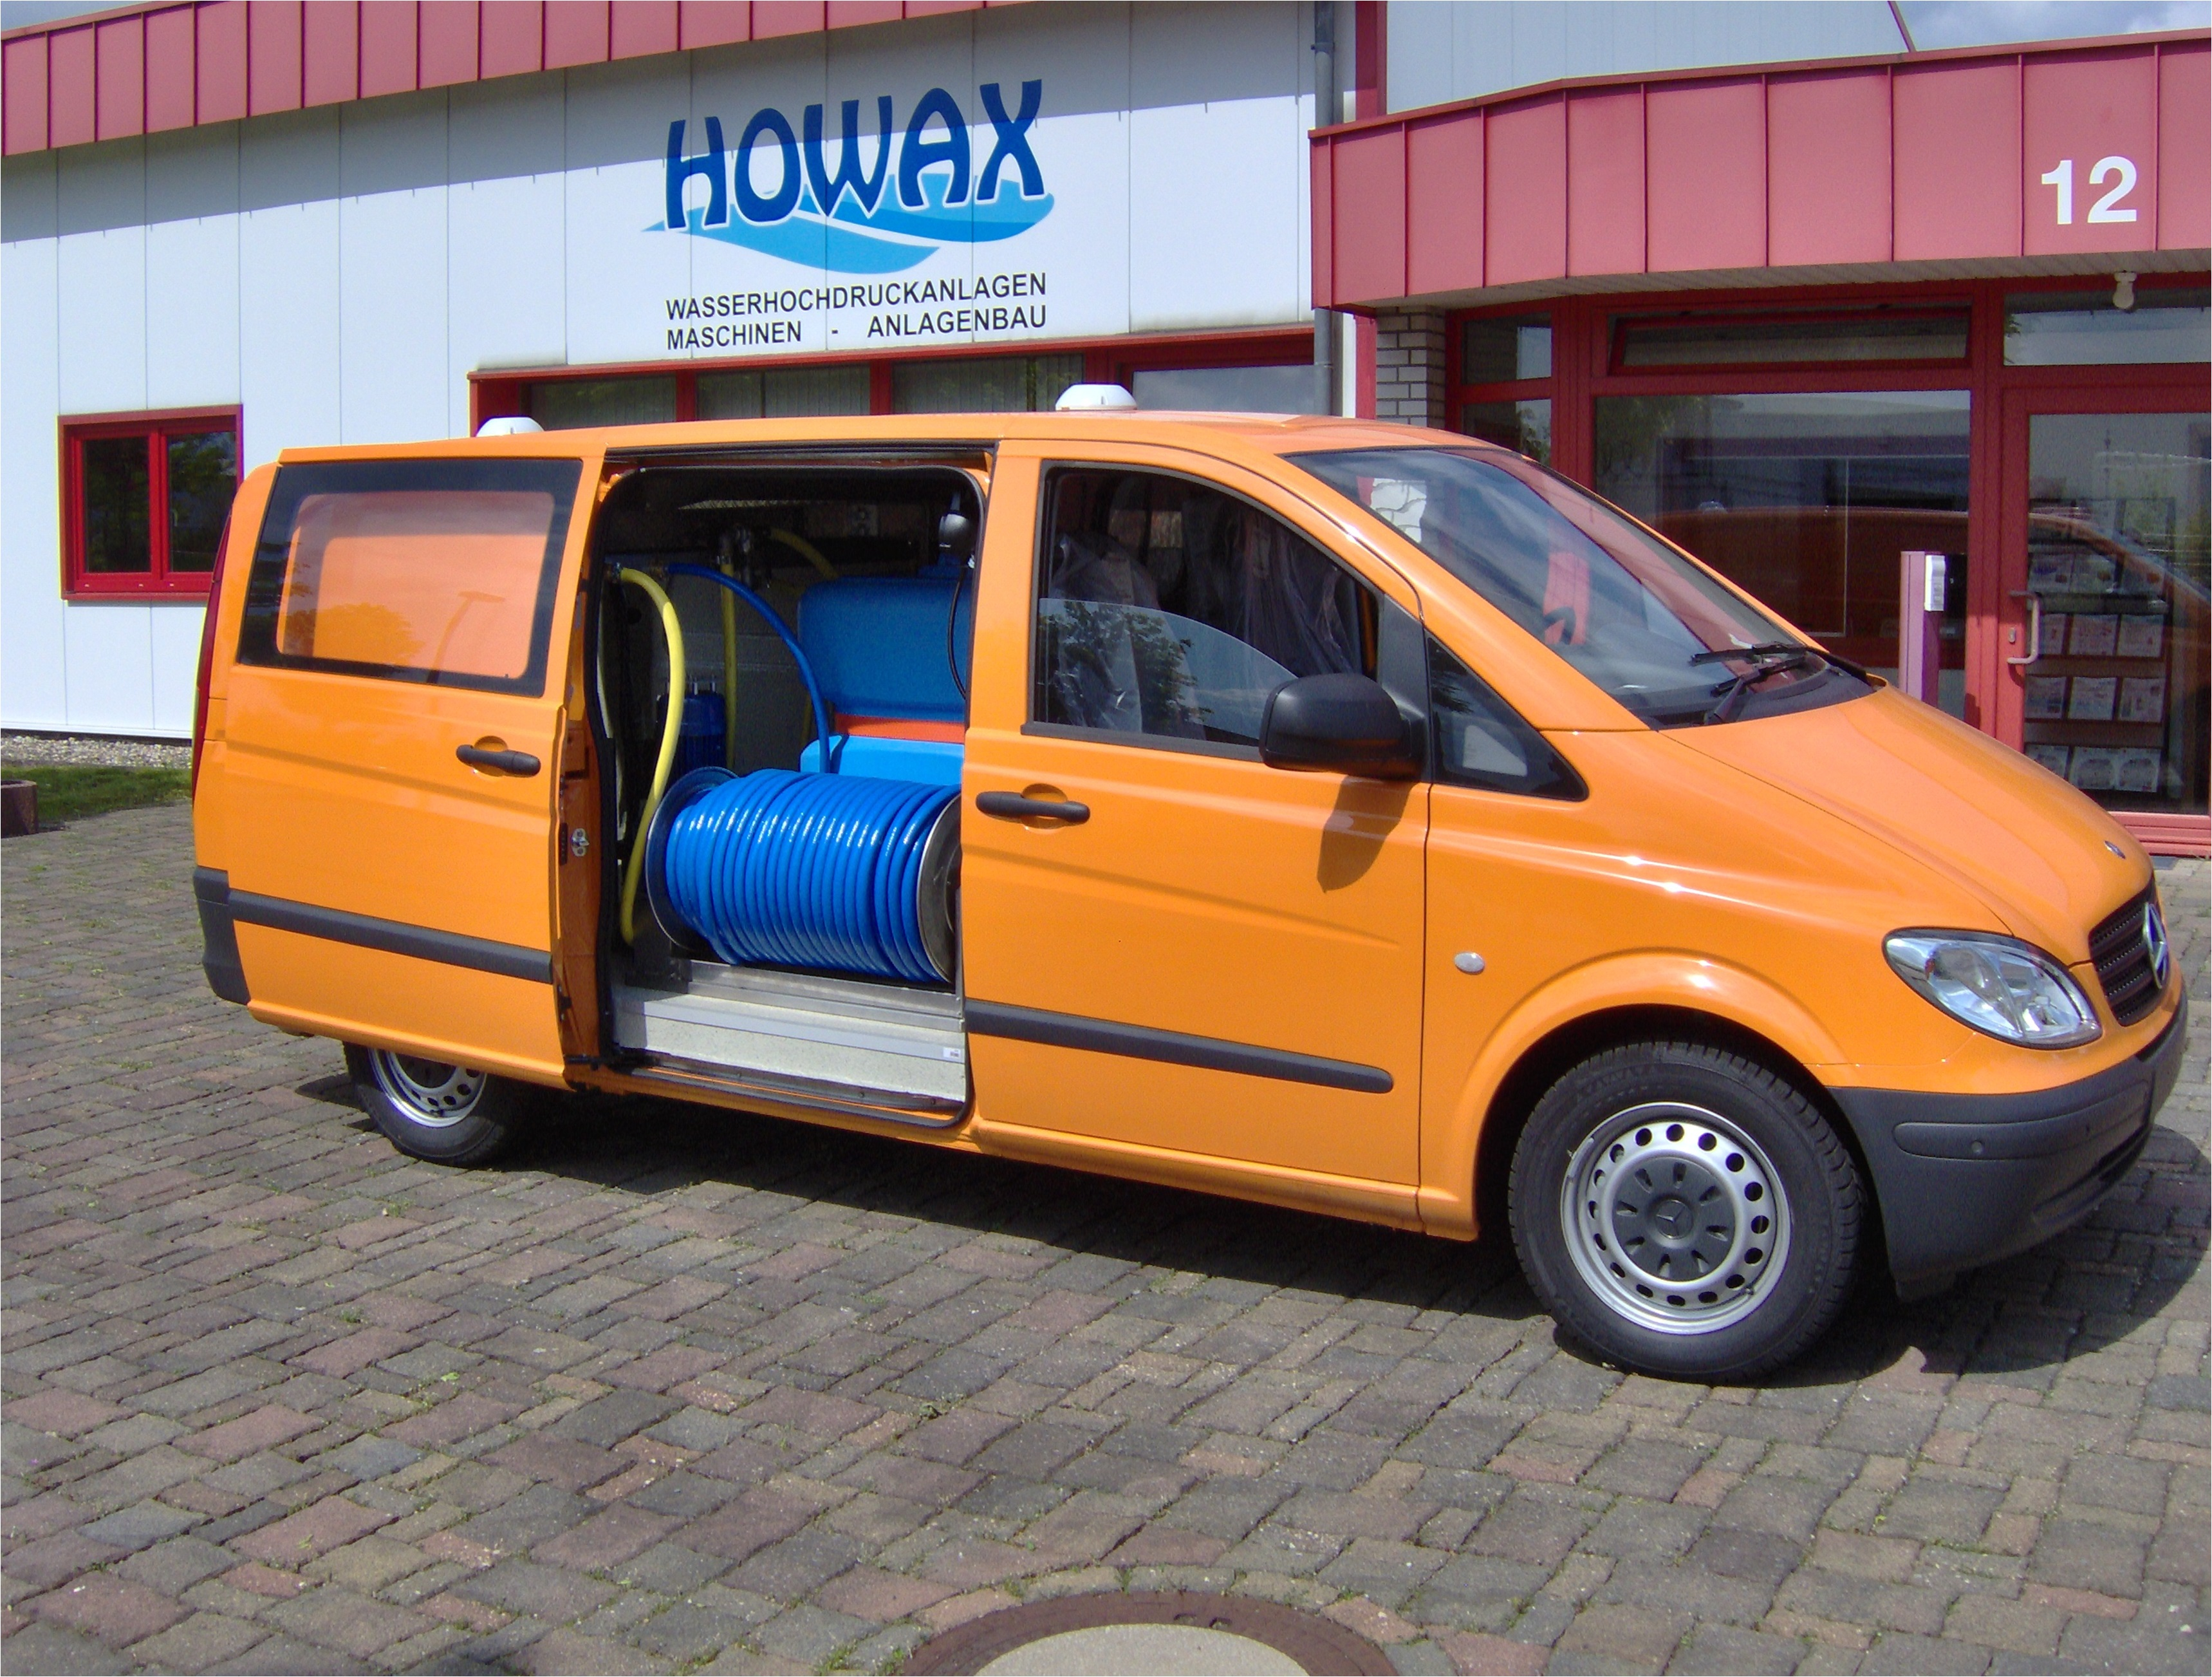 https://www.howax.de/wp-content/uploads/2016/06/vito1.jpg